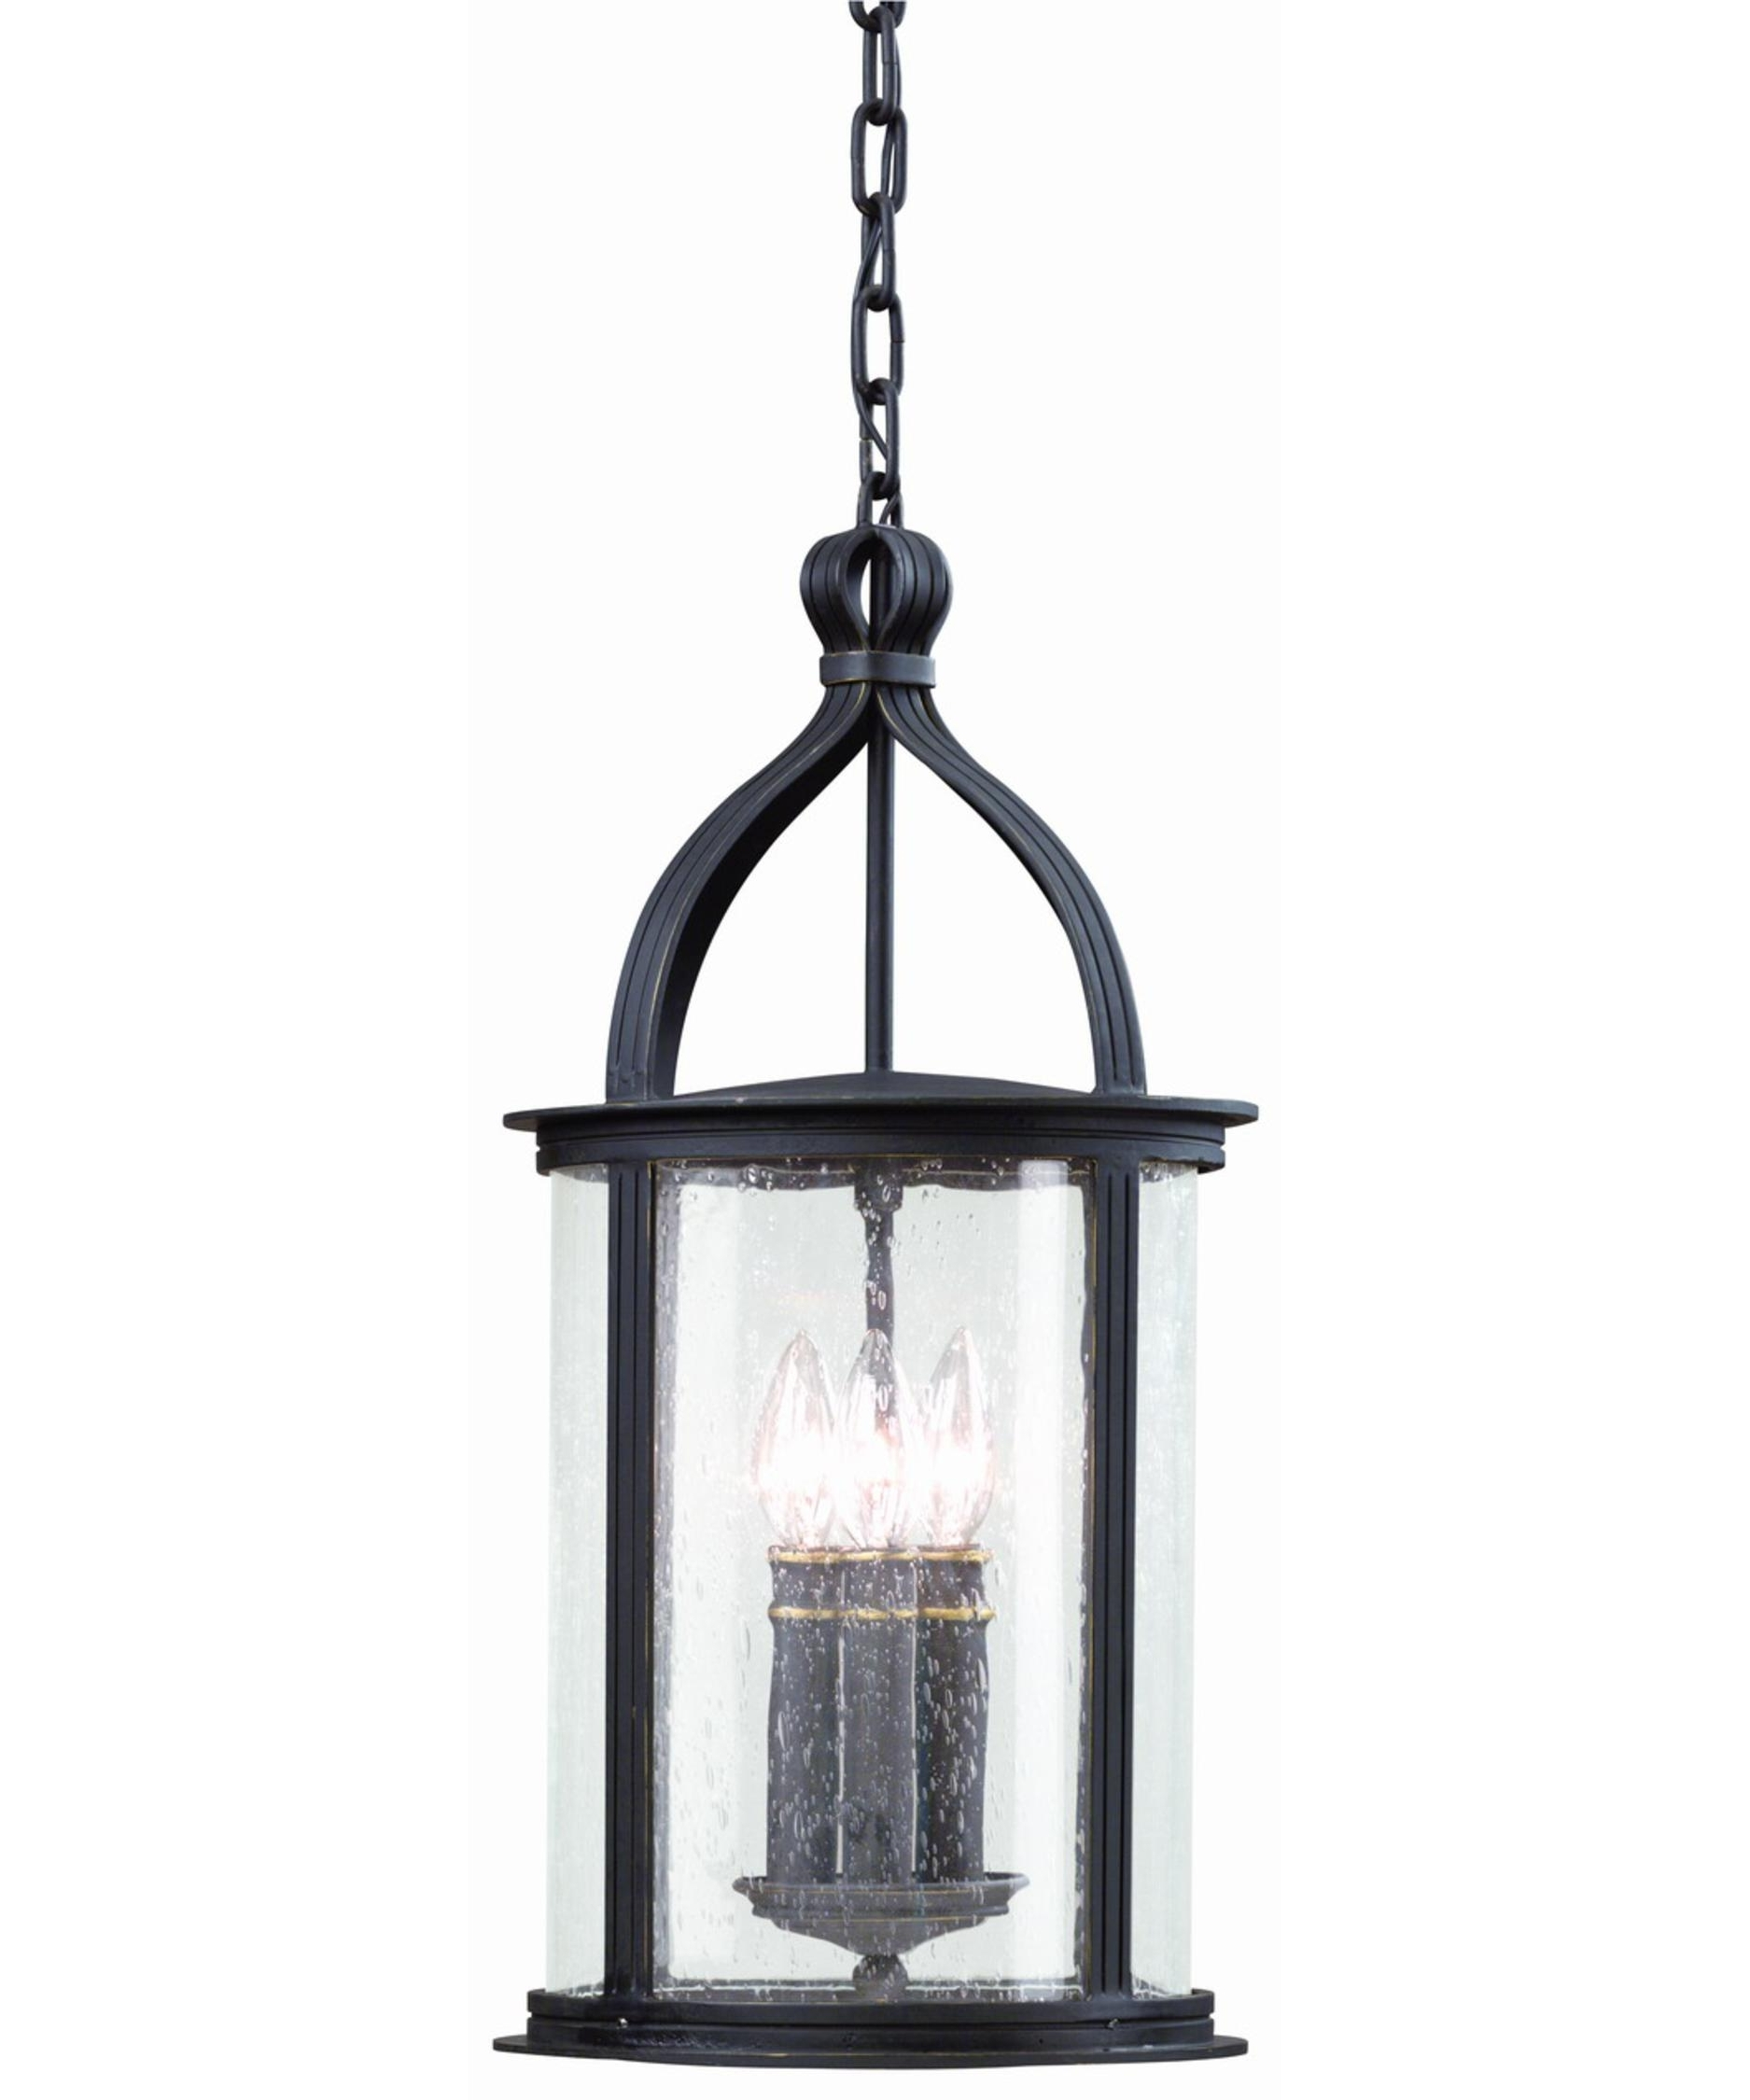 Troy Lighting F9476 Scarsdale 10 Inch Wide 3 Light Outdoor Hanging Regarding Latest Outdoor Hanging Metal Lanterns (View 4 of 20)